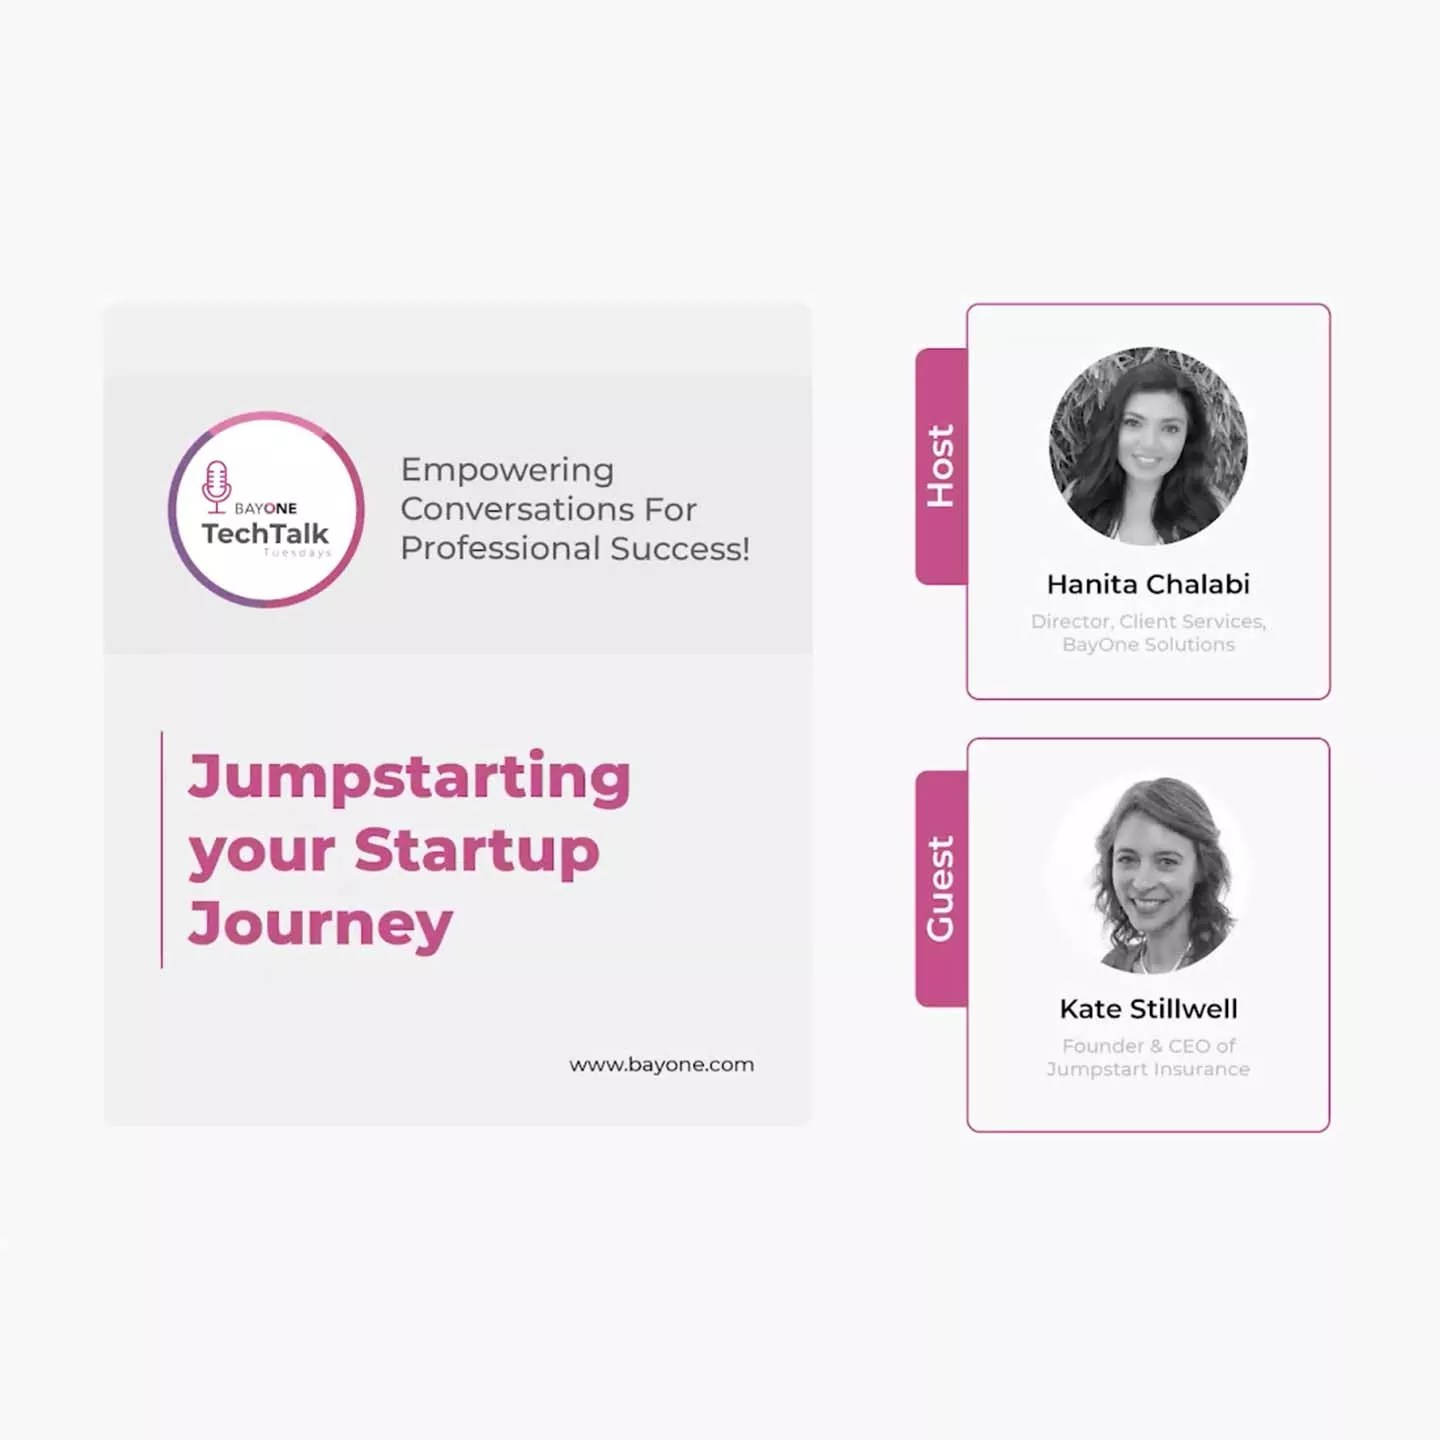 Jumpstarting your Startup Journey